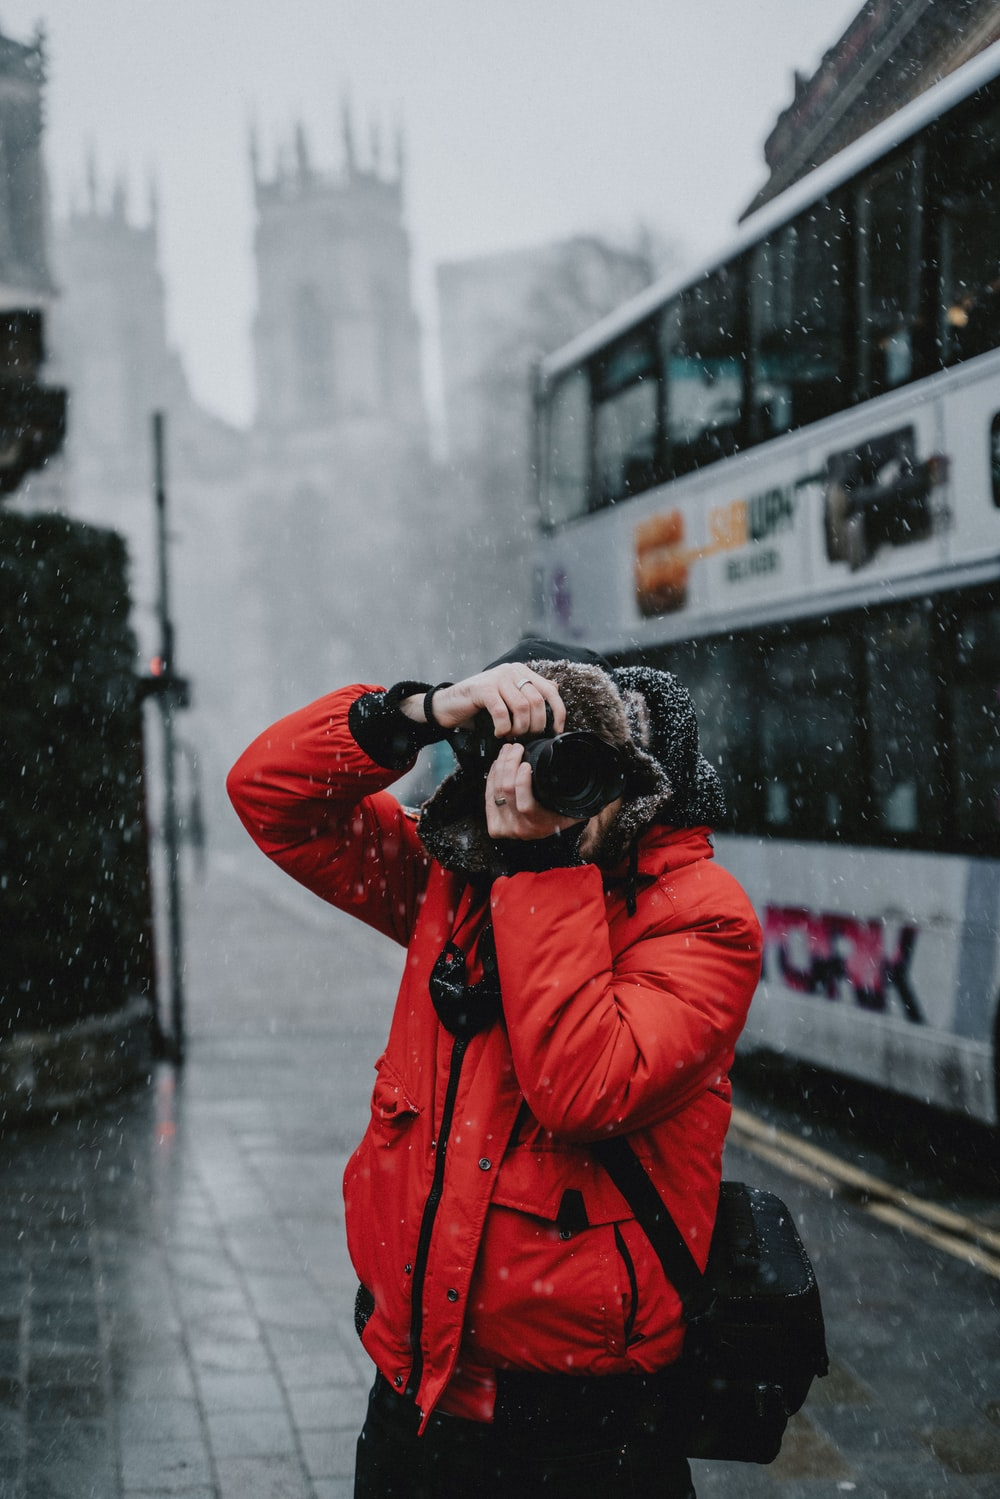 person in red jacket holding black dslr camera